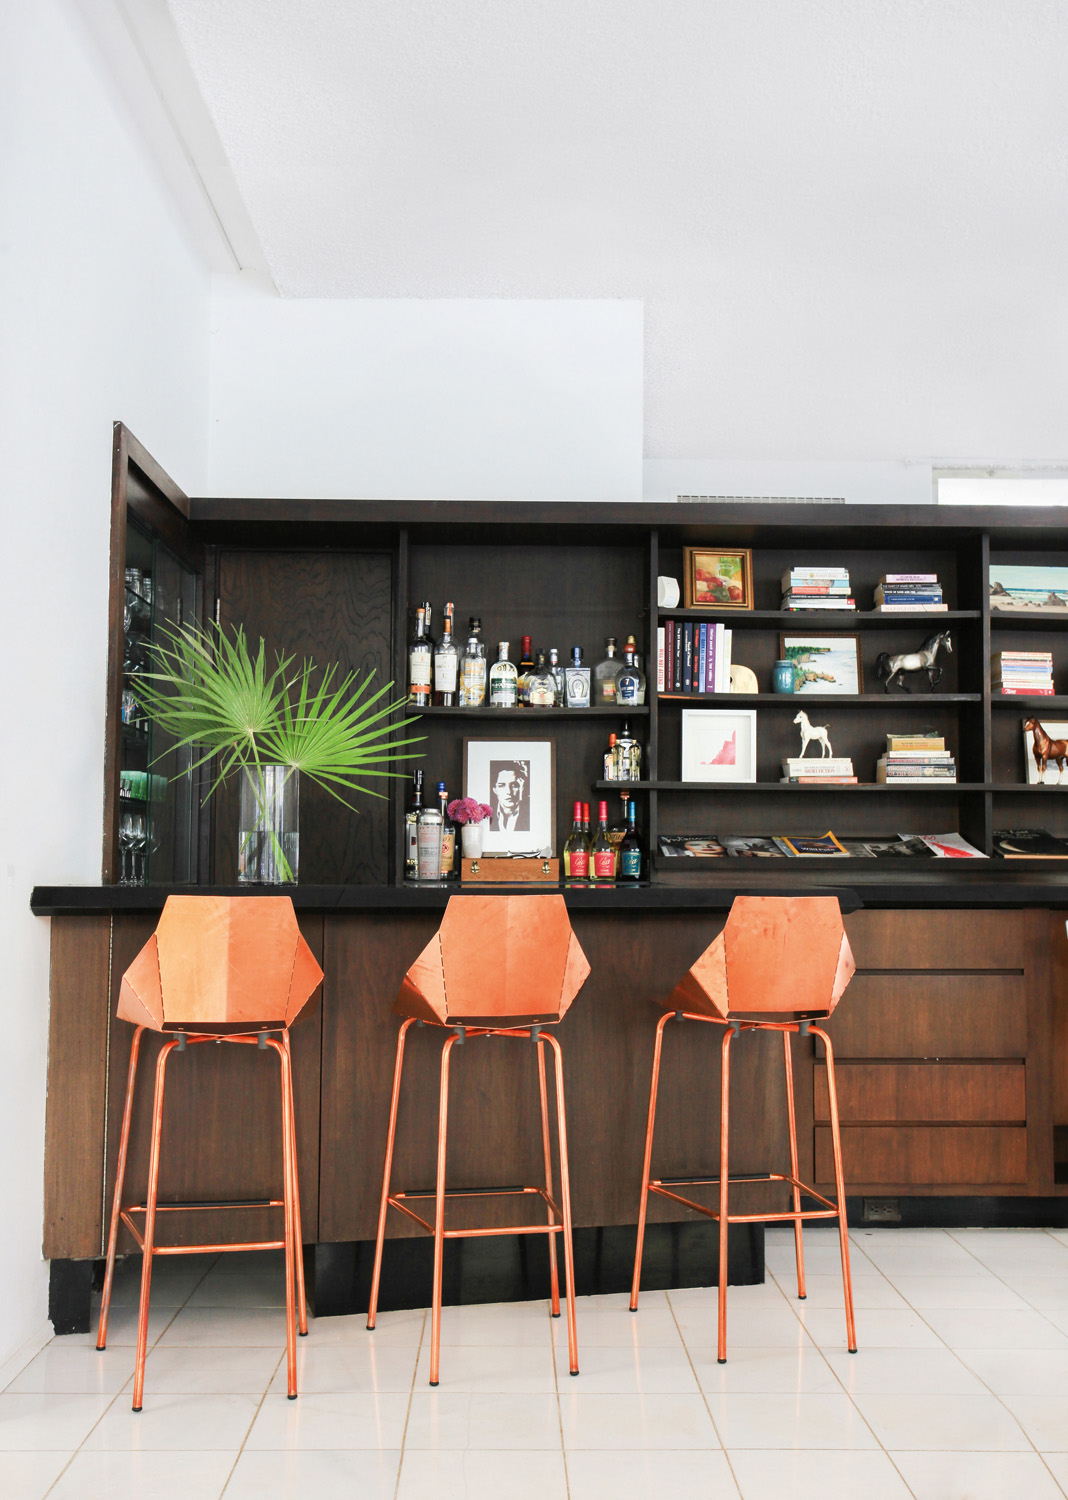 Copper stools add glamour to the neutral space